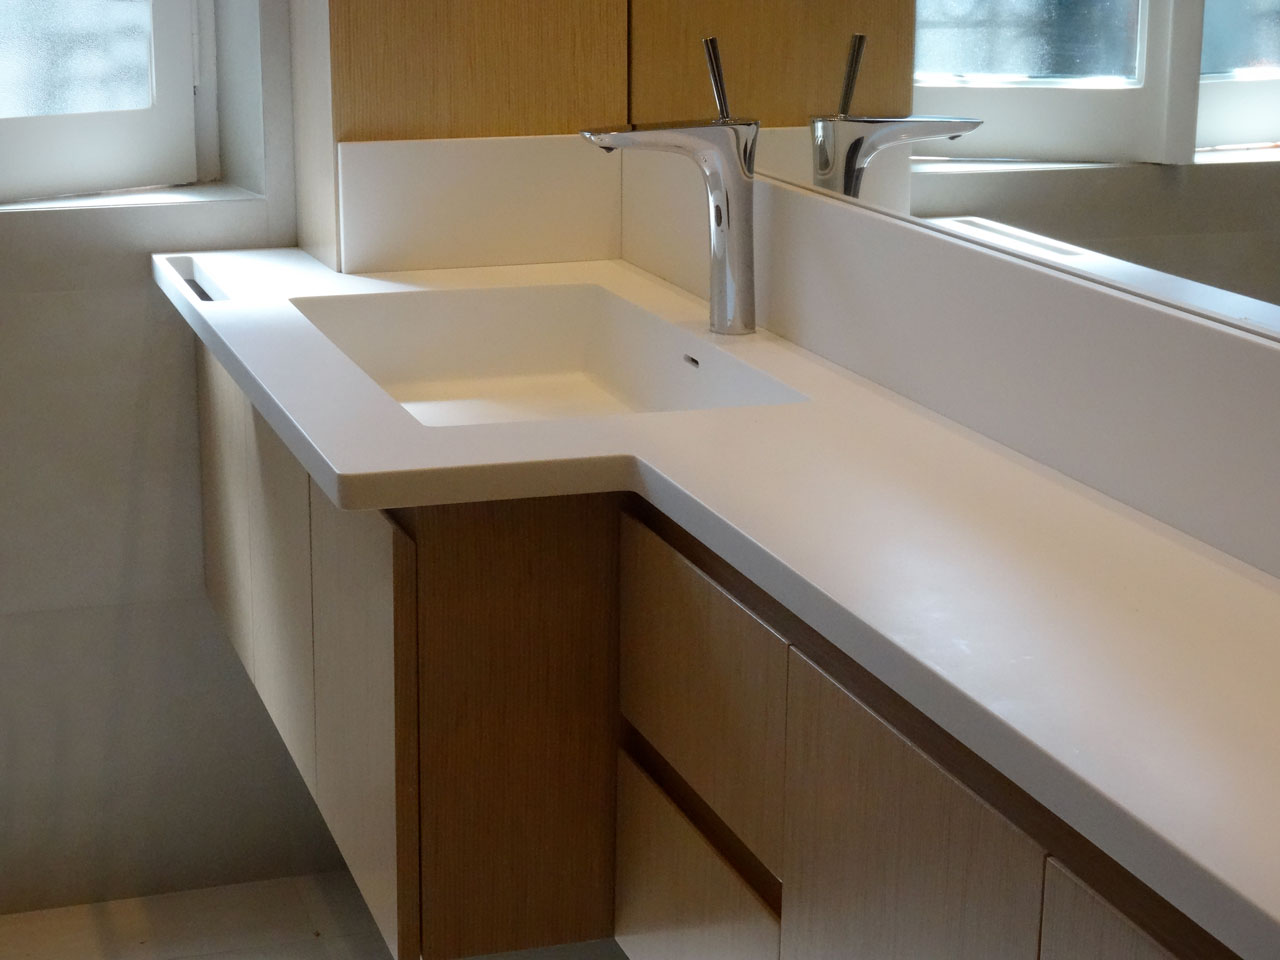 Mobile da bagno con Top in DuPont™ Corian® - Arco Arredo art & design in DuPont™ Corian®